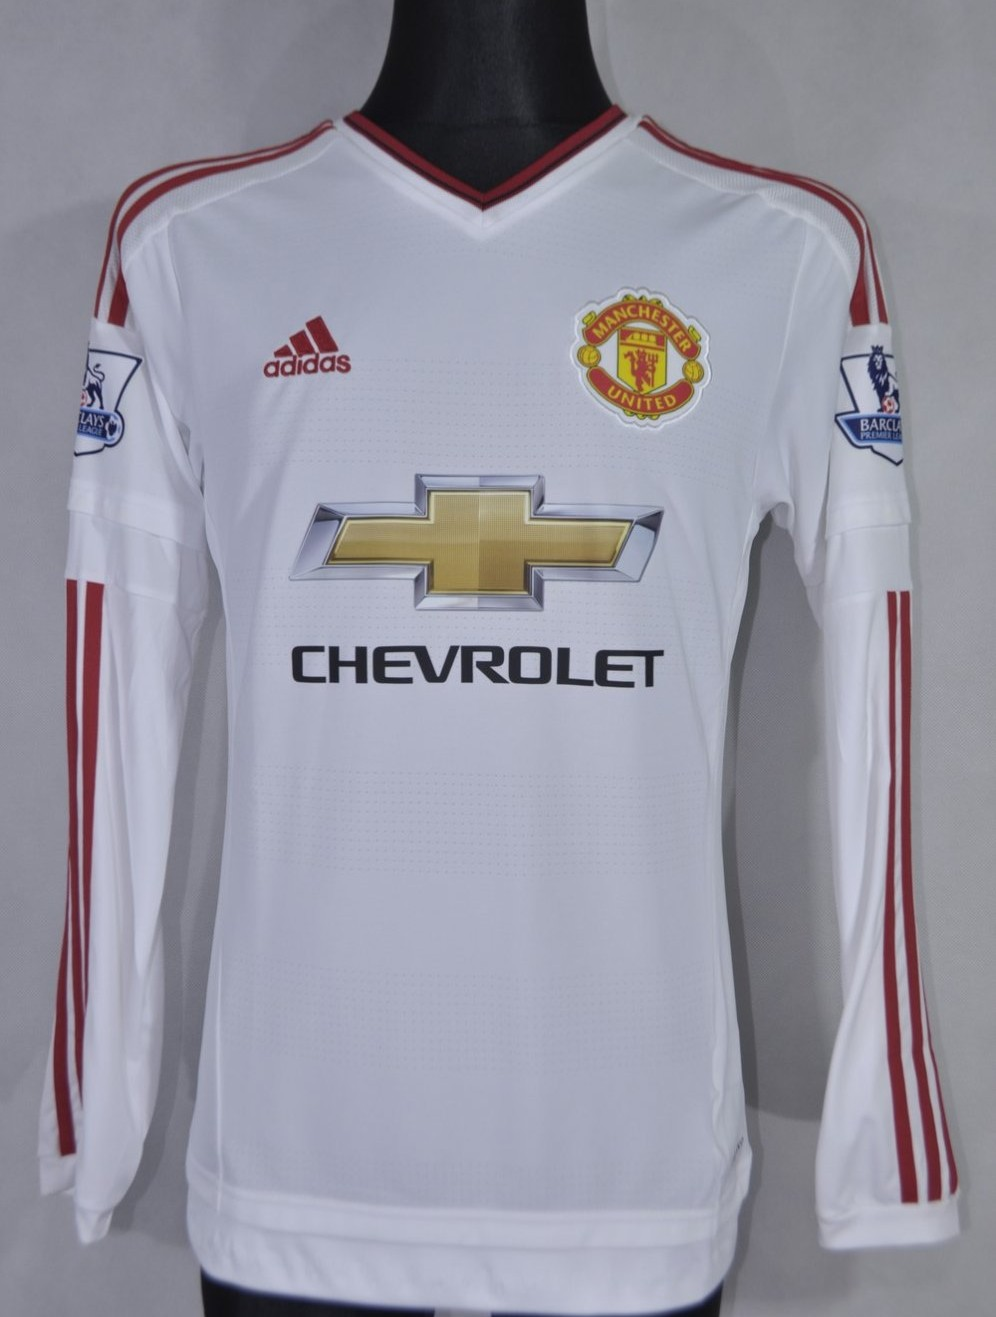 BNWT ADIDAS MANCHESTER UNITED 1968 Special Edition LS Soccer